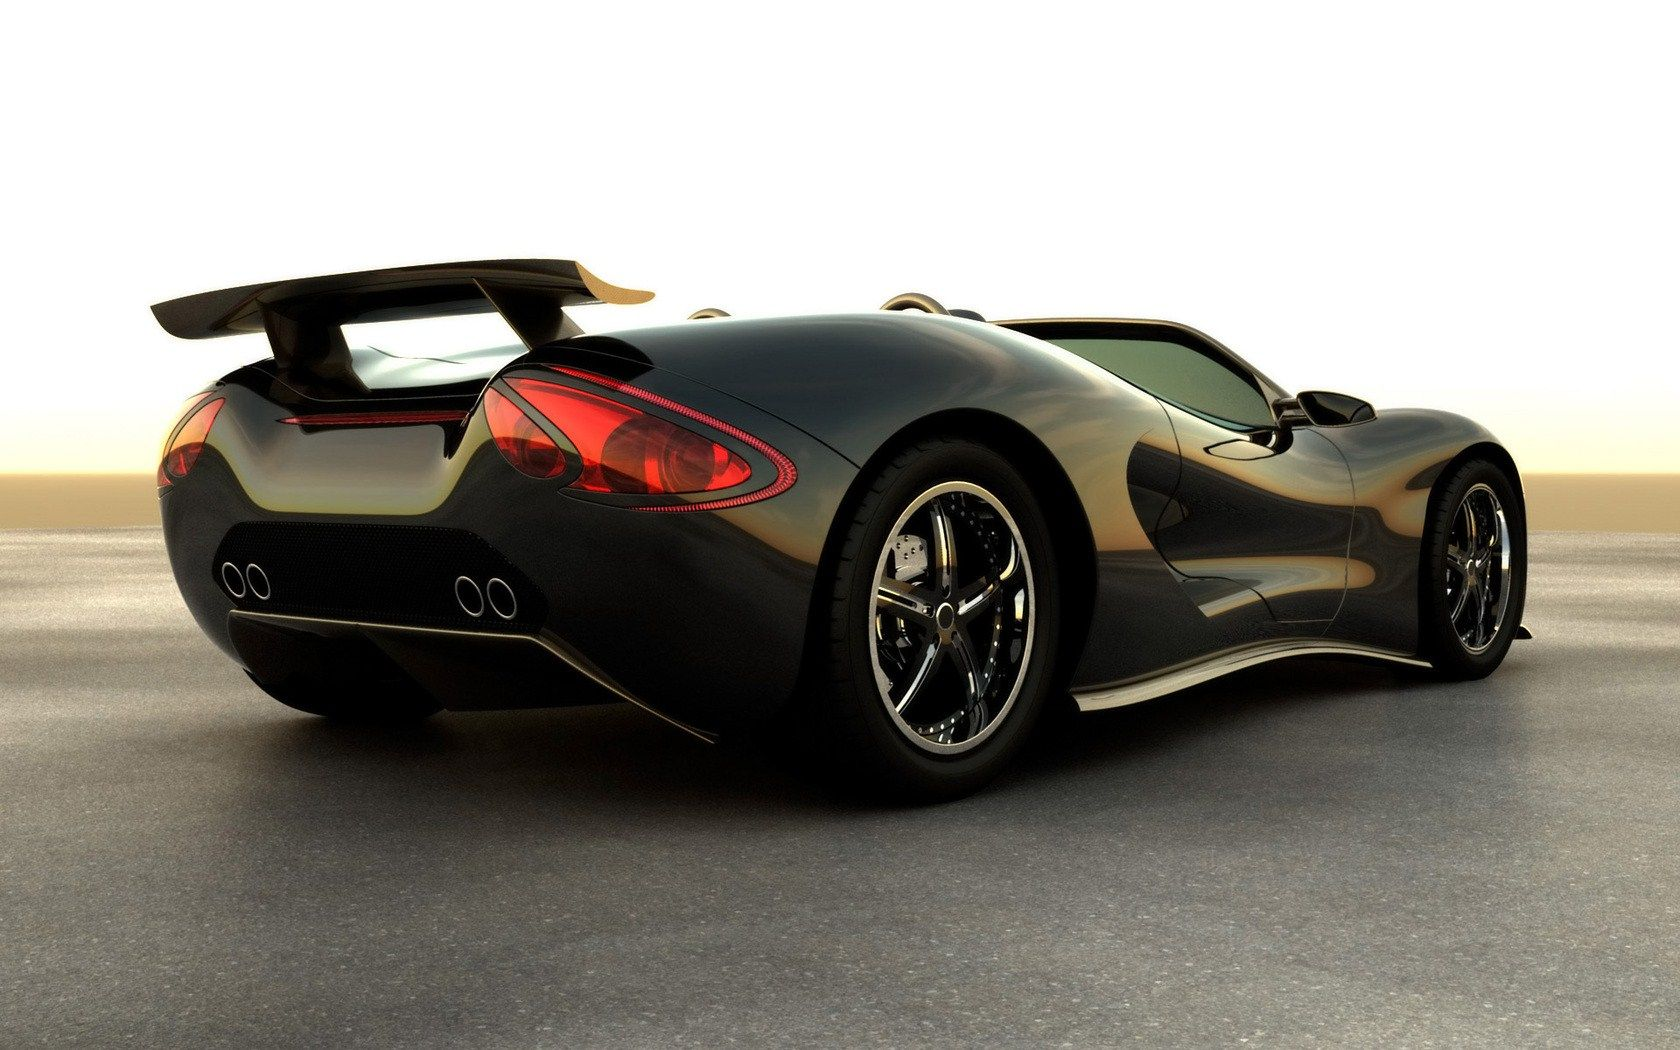 Luxury cars ronn motor company has created a sports car concept which runs in 30 40